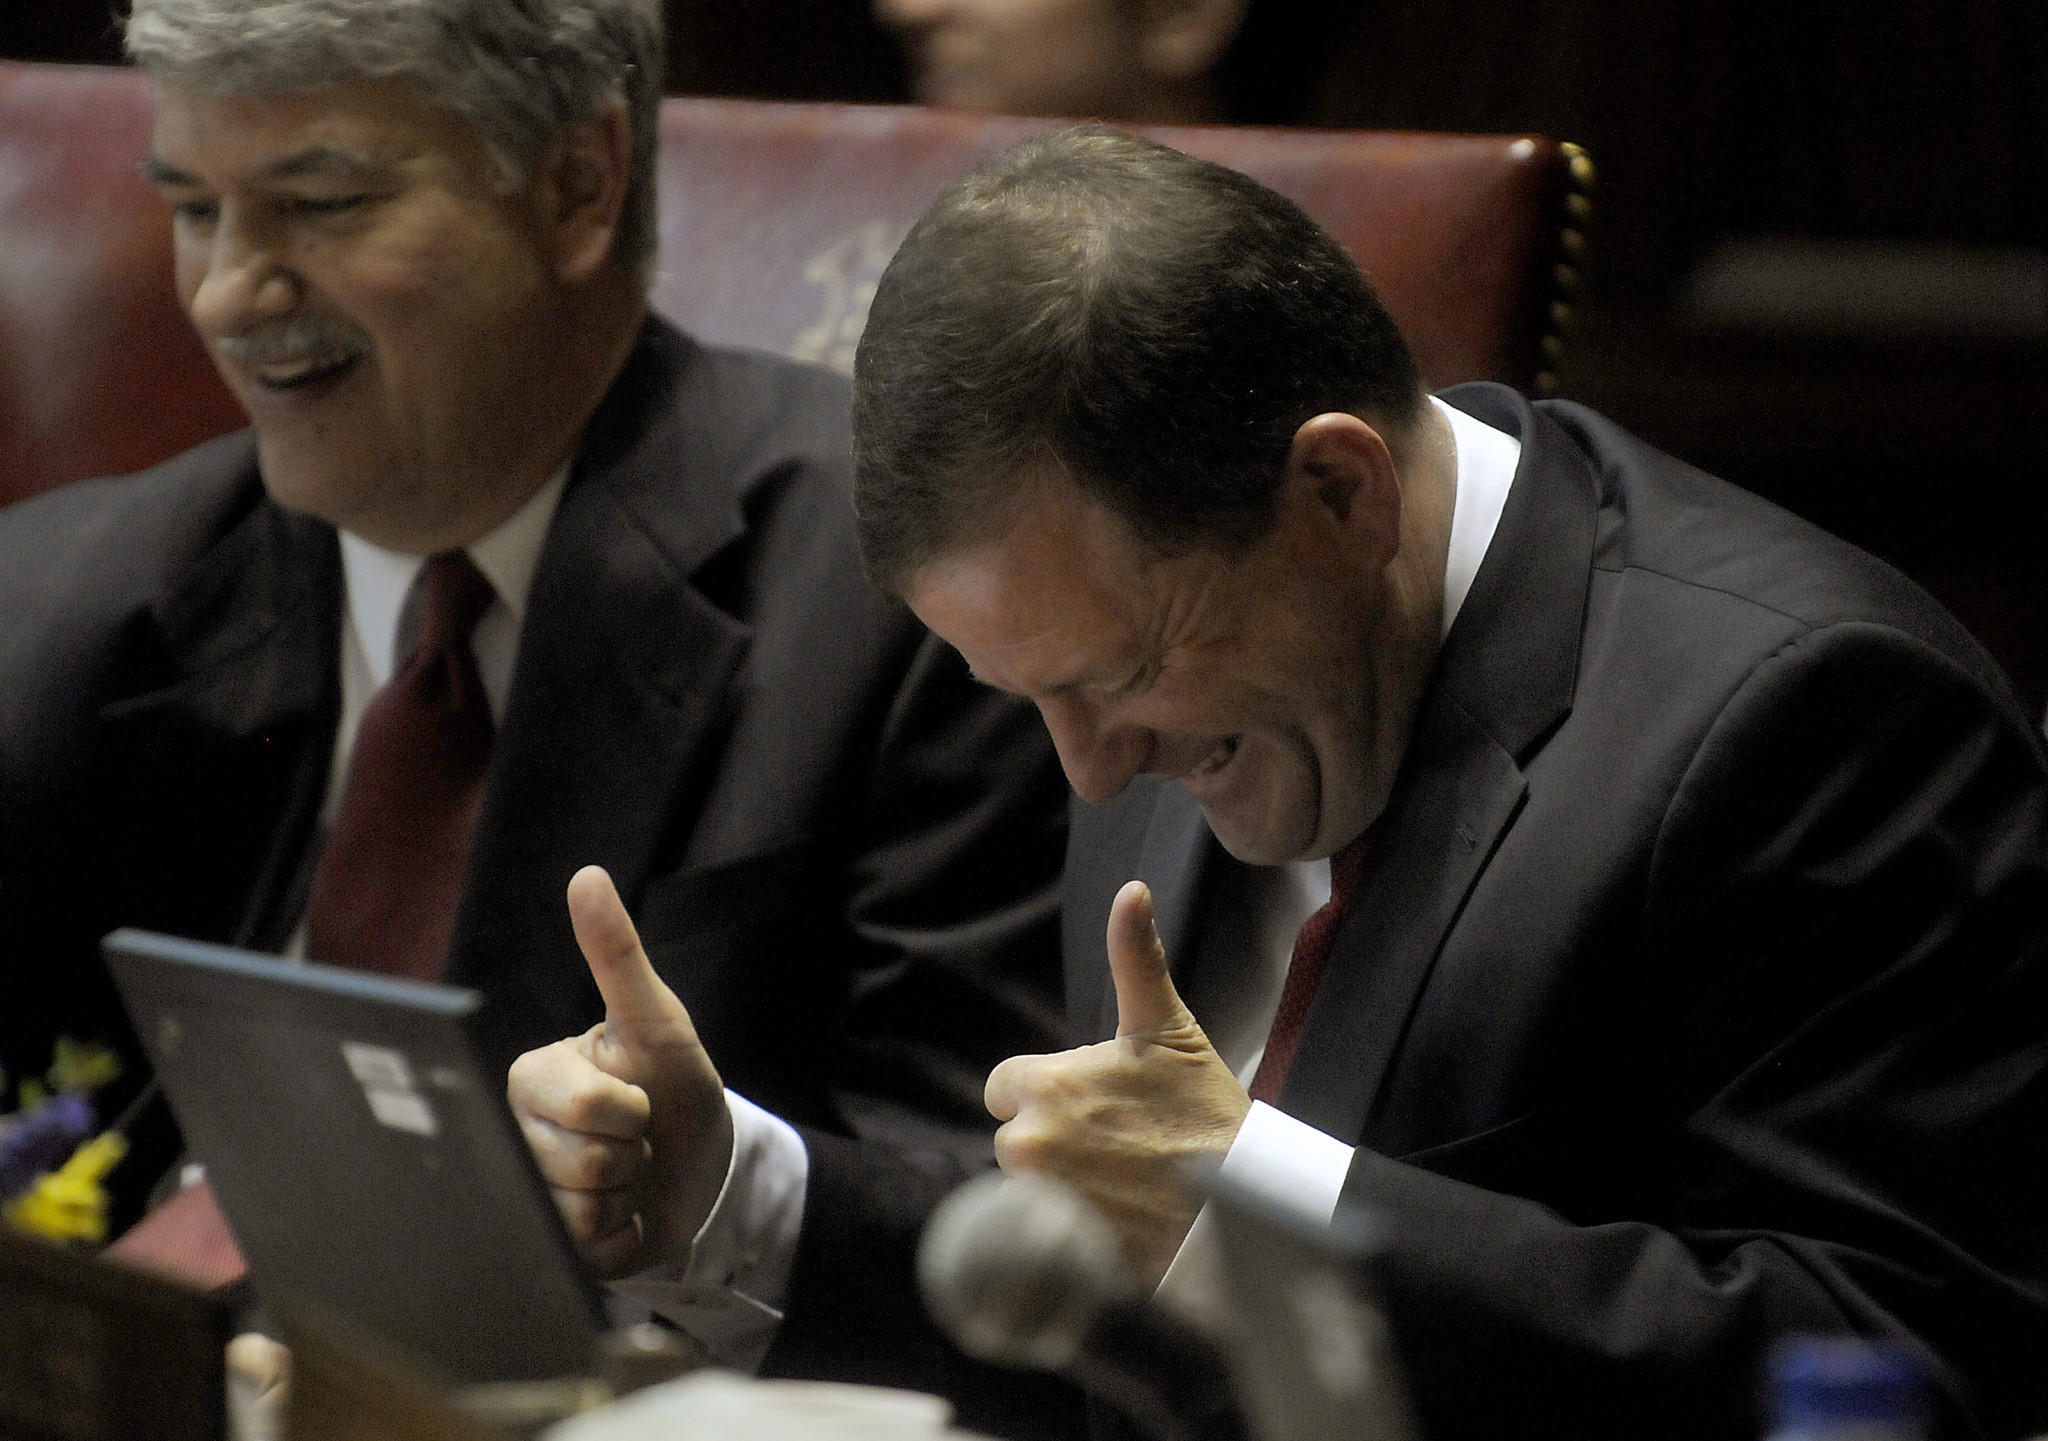 Senate Minority Leader John McKinney gives the thumbs-up as one of many senators saluted him and Senate President Pro Tem Donald E. Williams, left, during farewell speeches Wednesday night at the end of the legislative session. Both men are leaving the Senate.